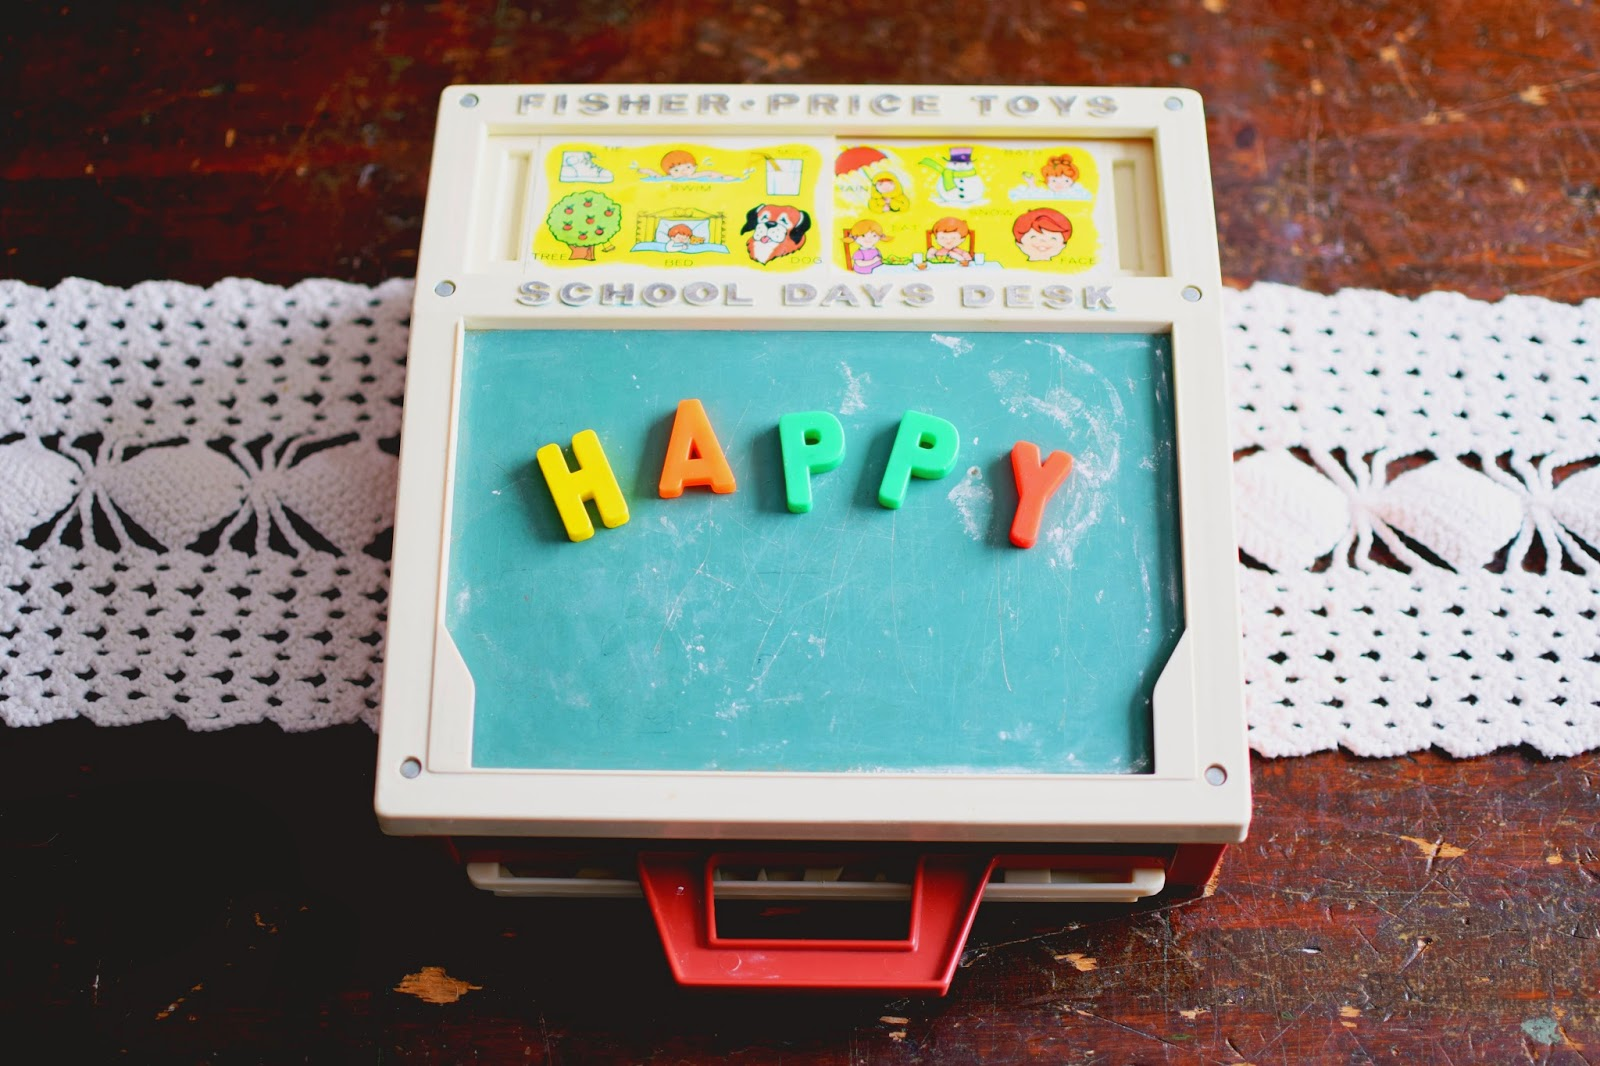 Fisher Price Vintage School Days Desk at Vintage Bliss